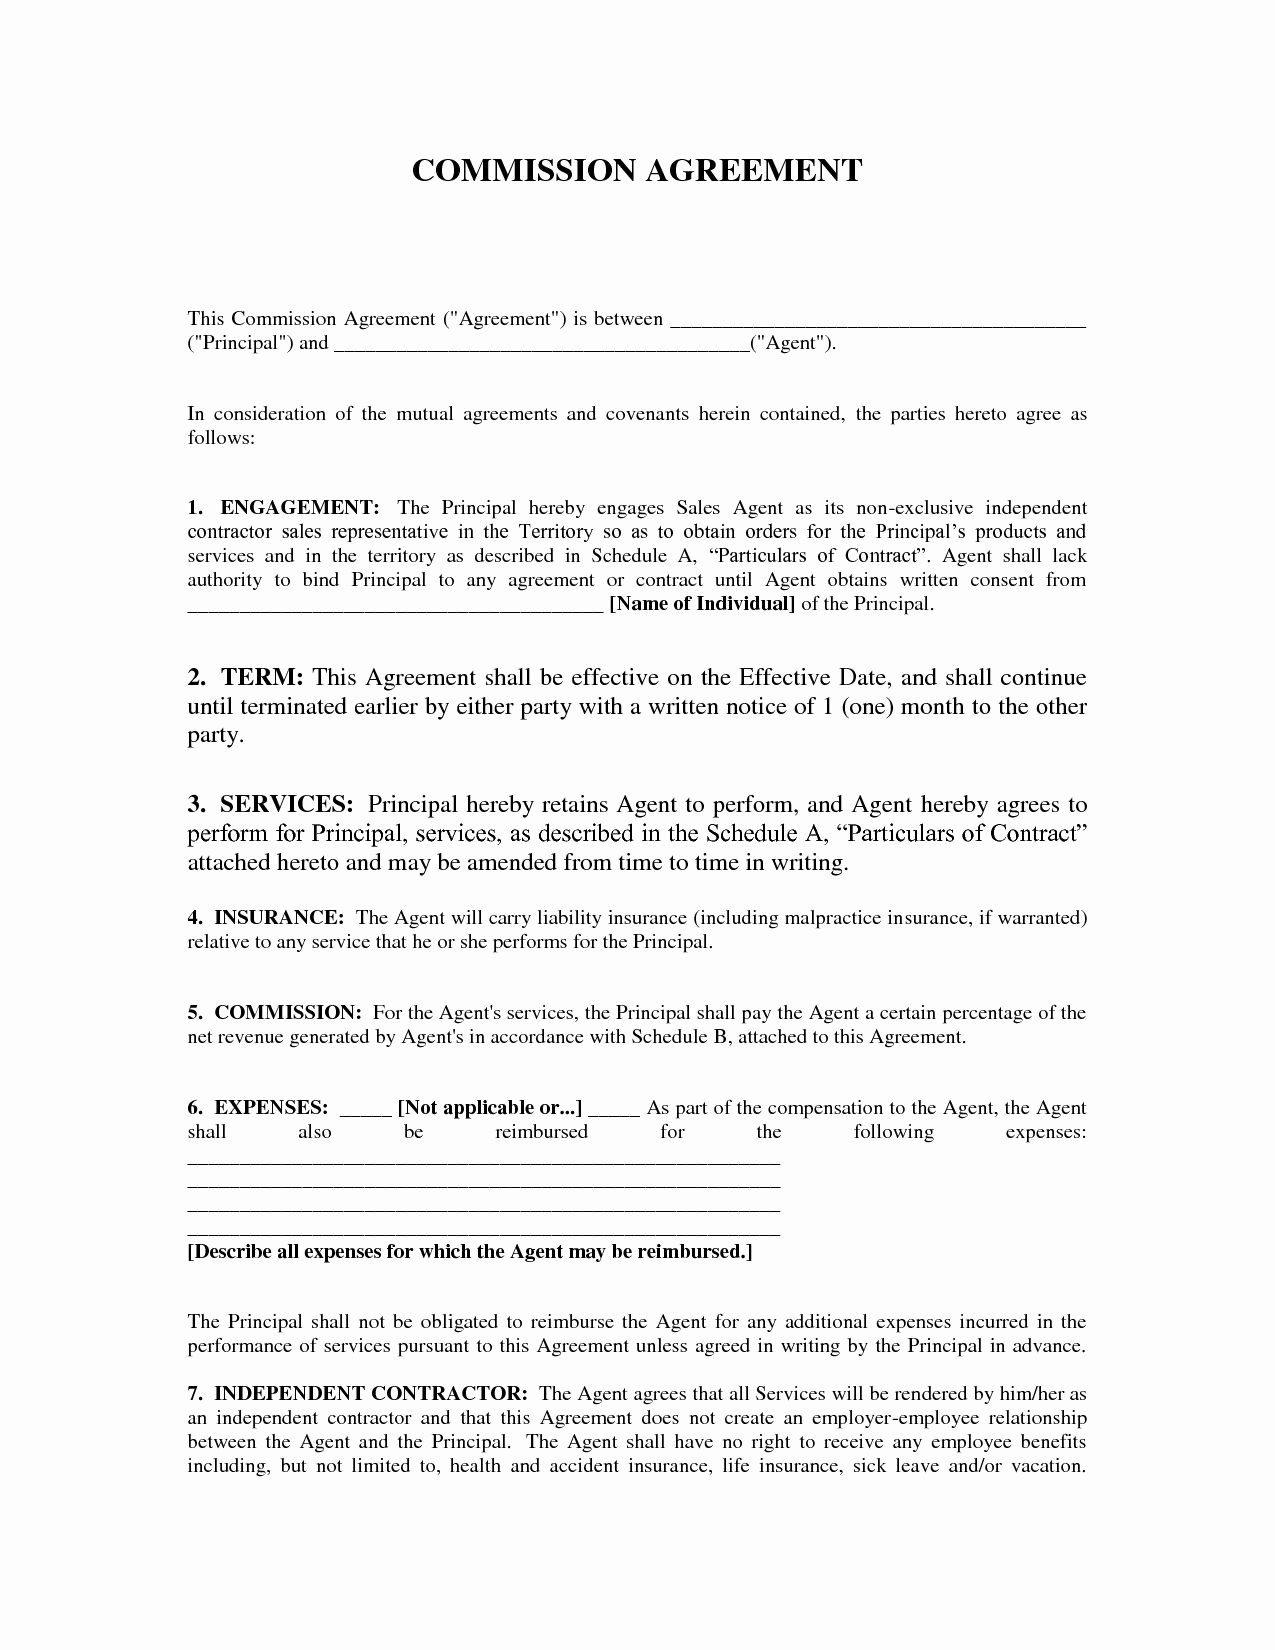 Sales Commission Agreement Template Best Of 7 Best Of Sales Mission Agreement Sample Sales